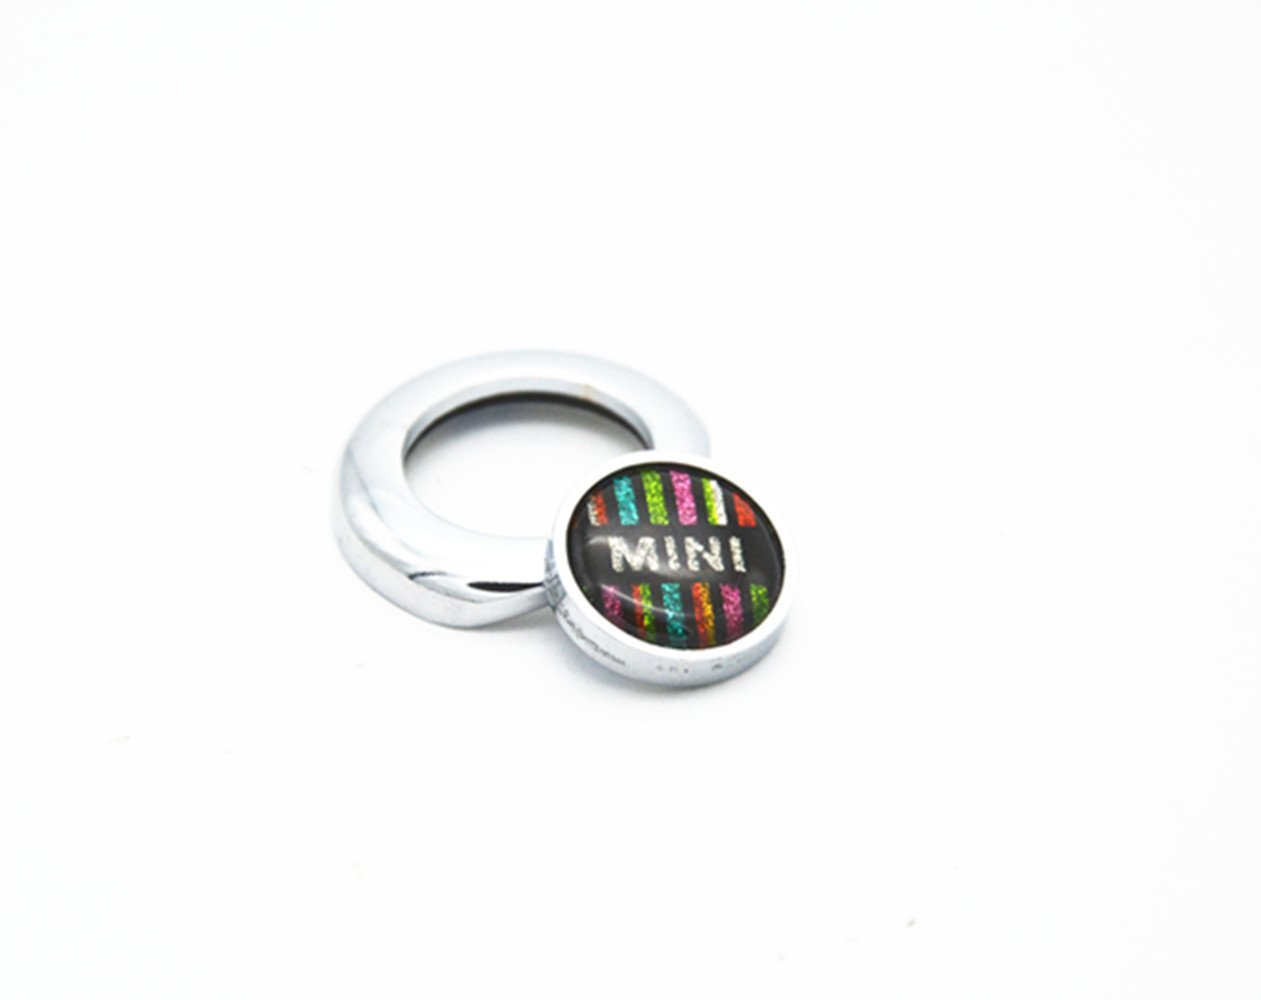 MOTO4U Engine Start Push Button Switch Ignition adhesive Cover Stop Pushbutton Emblem For Mini Cooper ONE//S//JCW R61 R60 R55 R56 R57 R58 R59 F54 F55 F56 F57 F60 Clubman Countryman Hardtop Hatchback In Checkered Flag Design